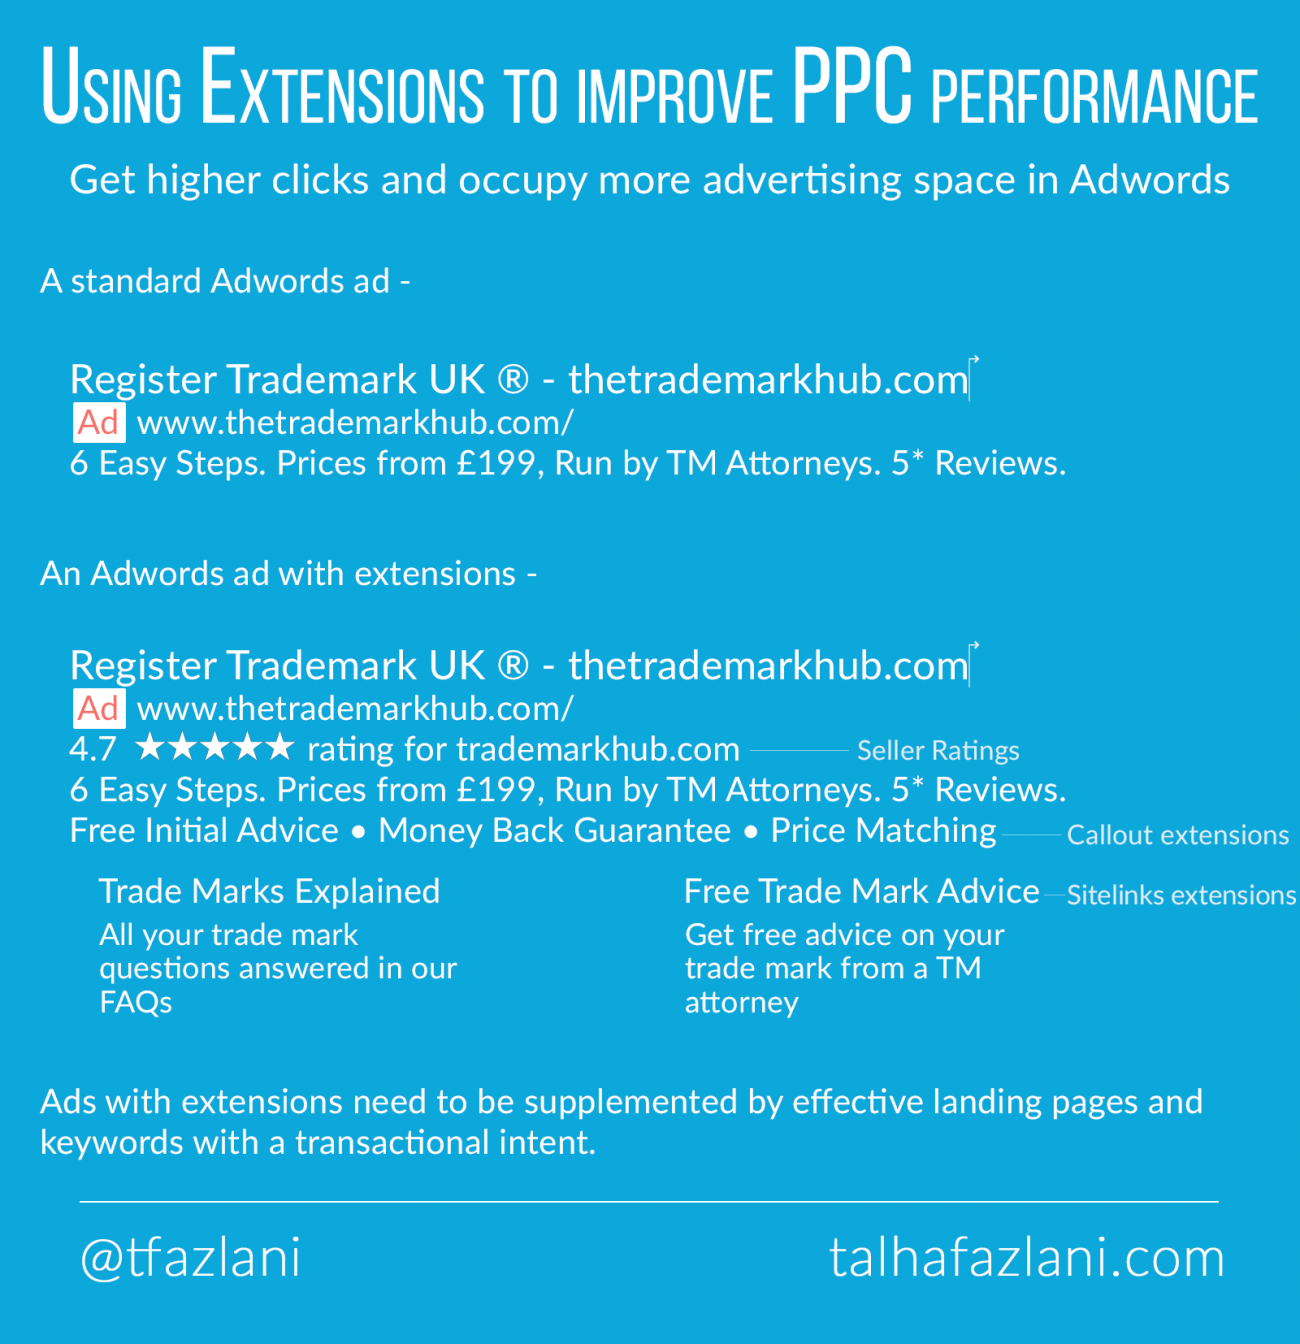 Using Extensions To Improve Adwords Performance